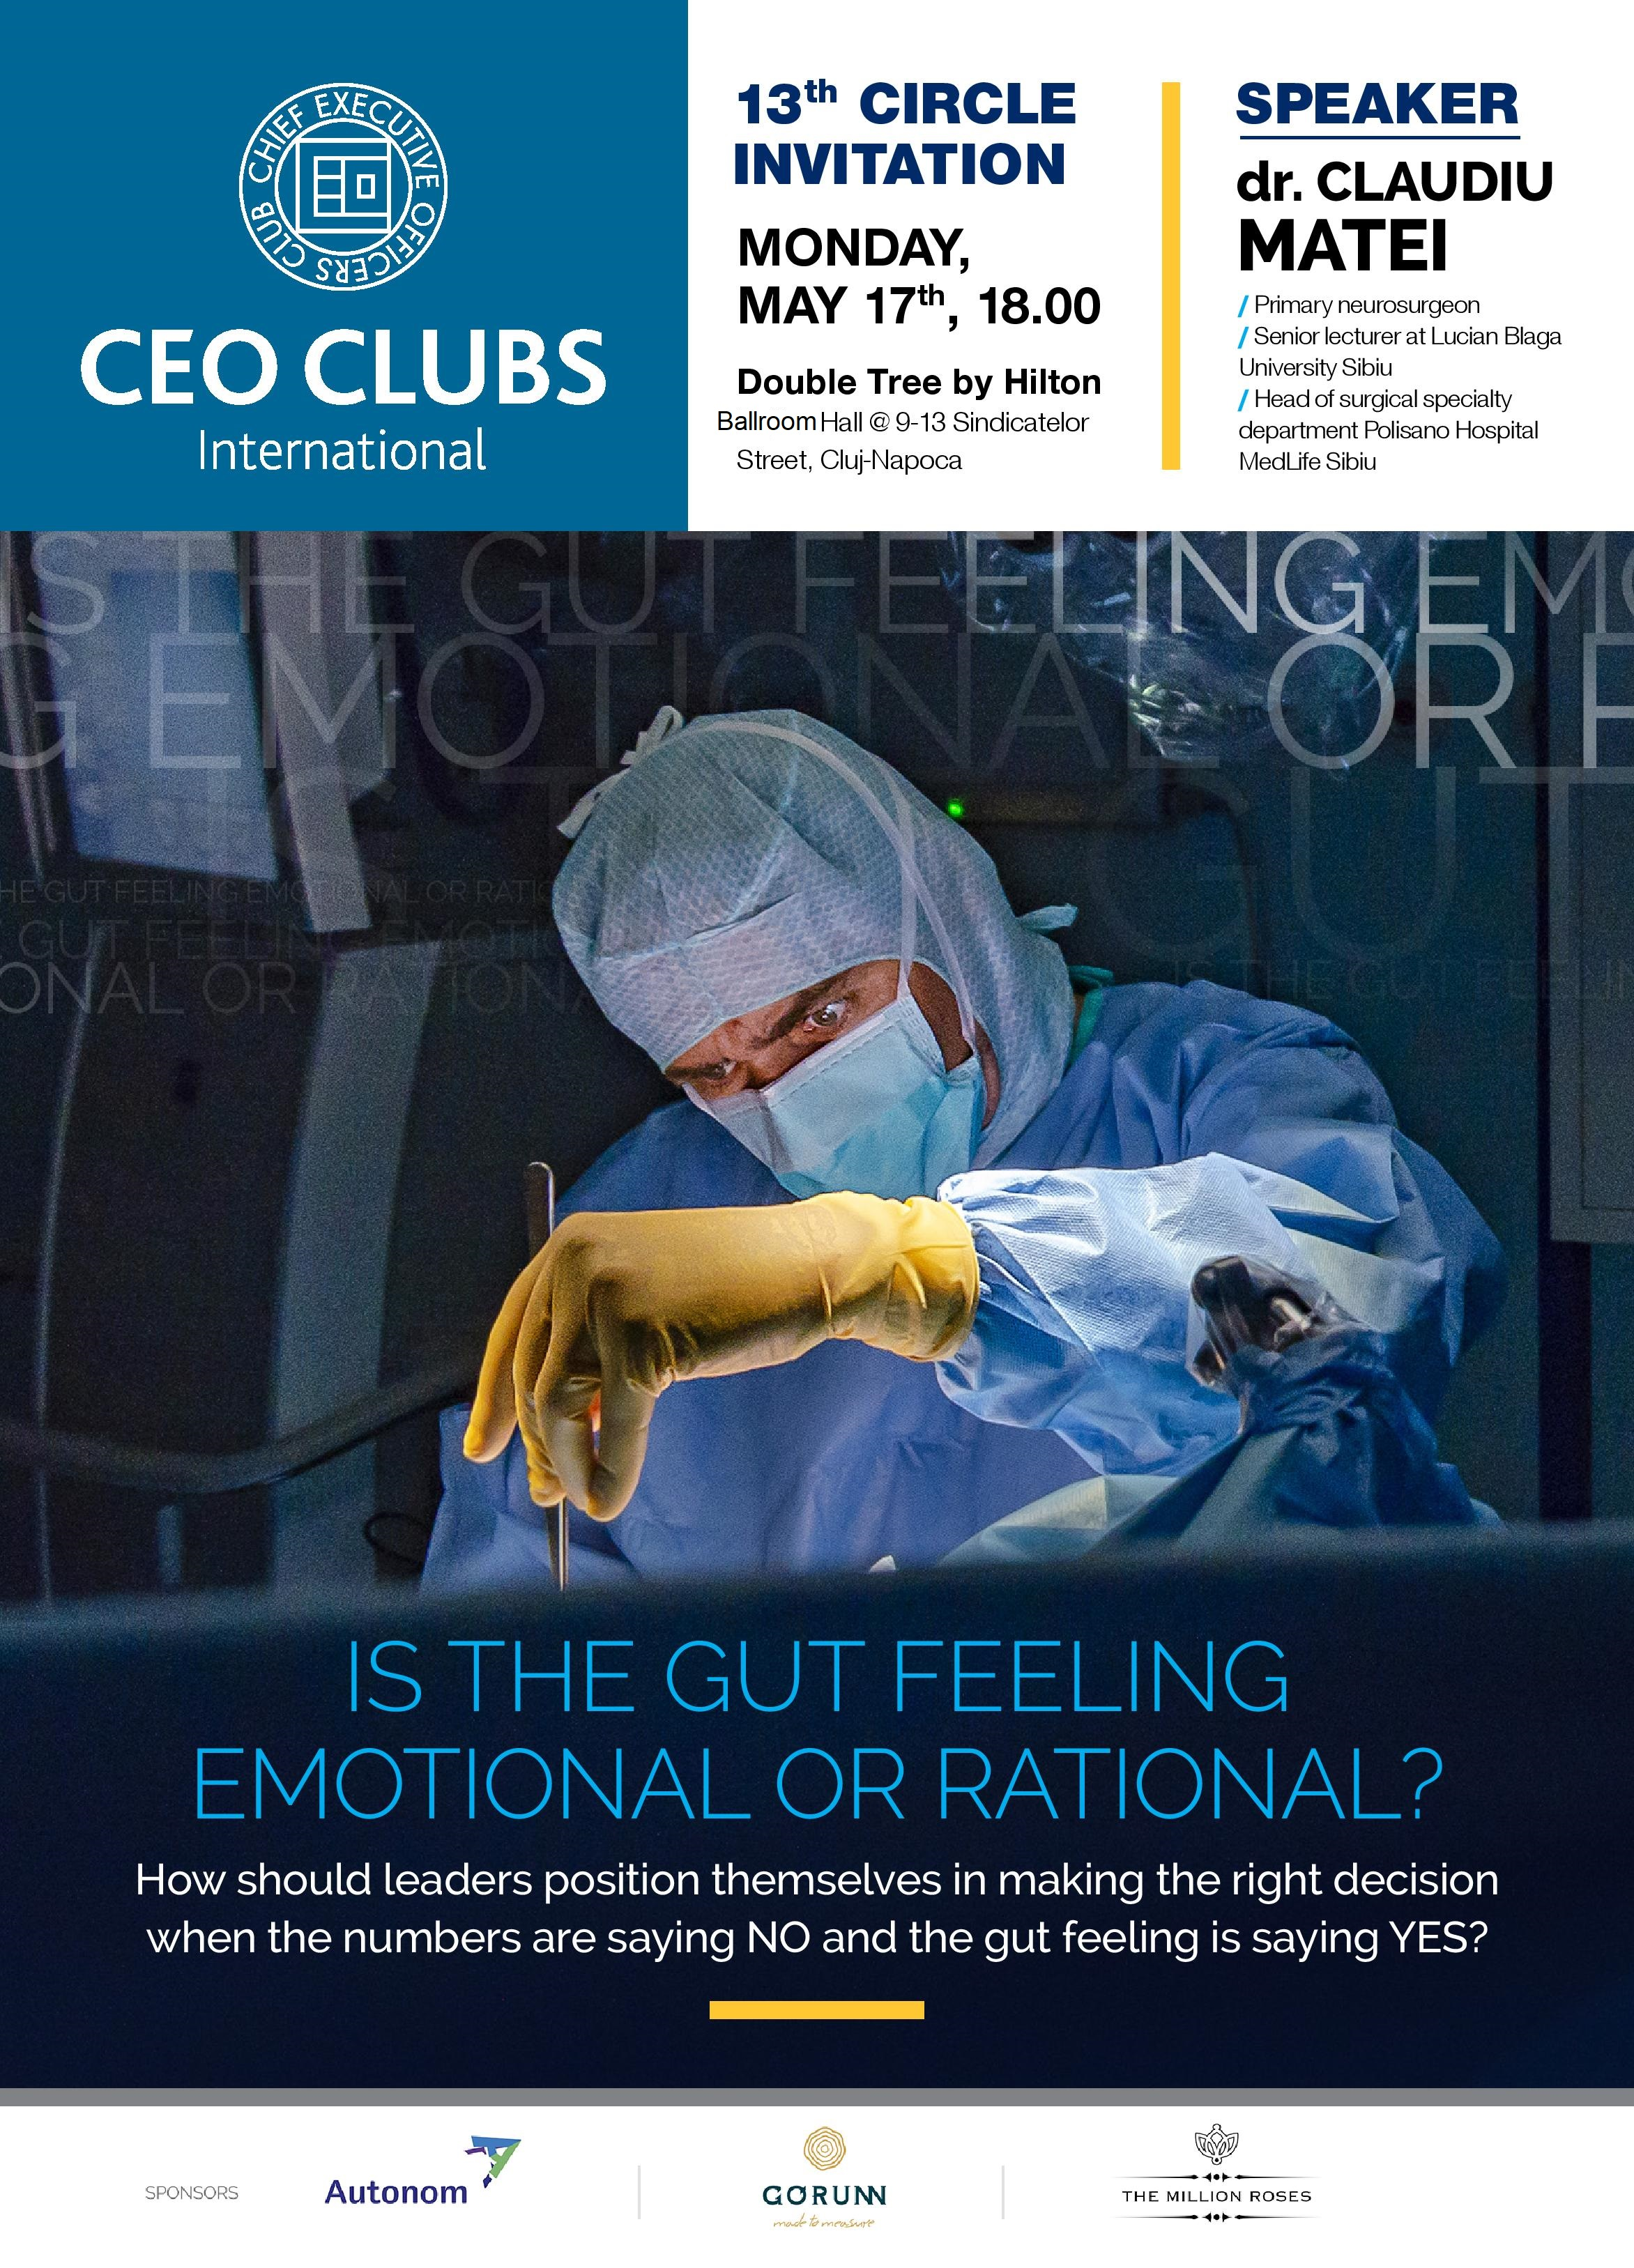 13th Circle: Is the gut feeling emotional or rational?